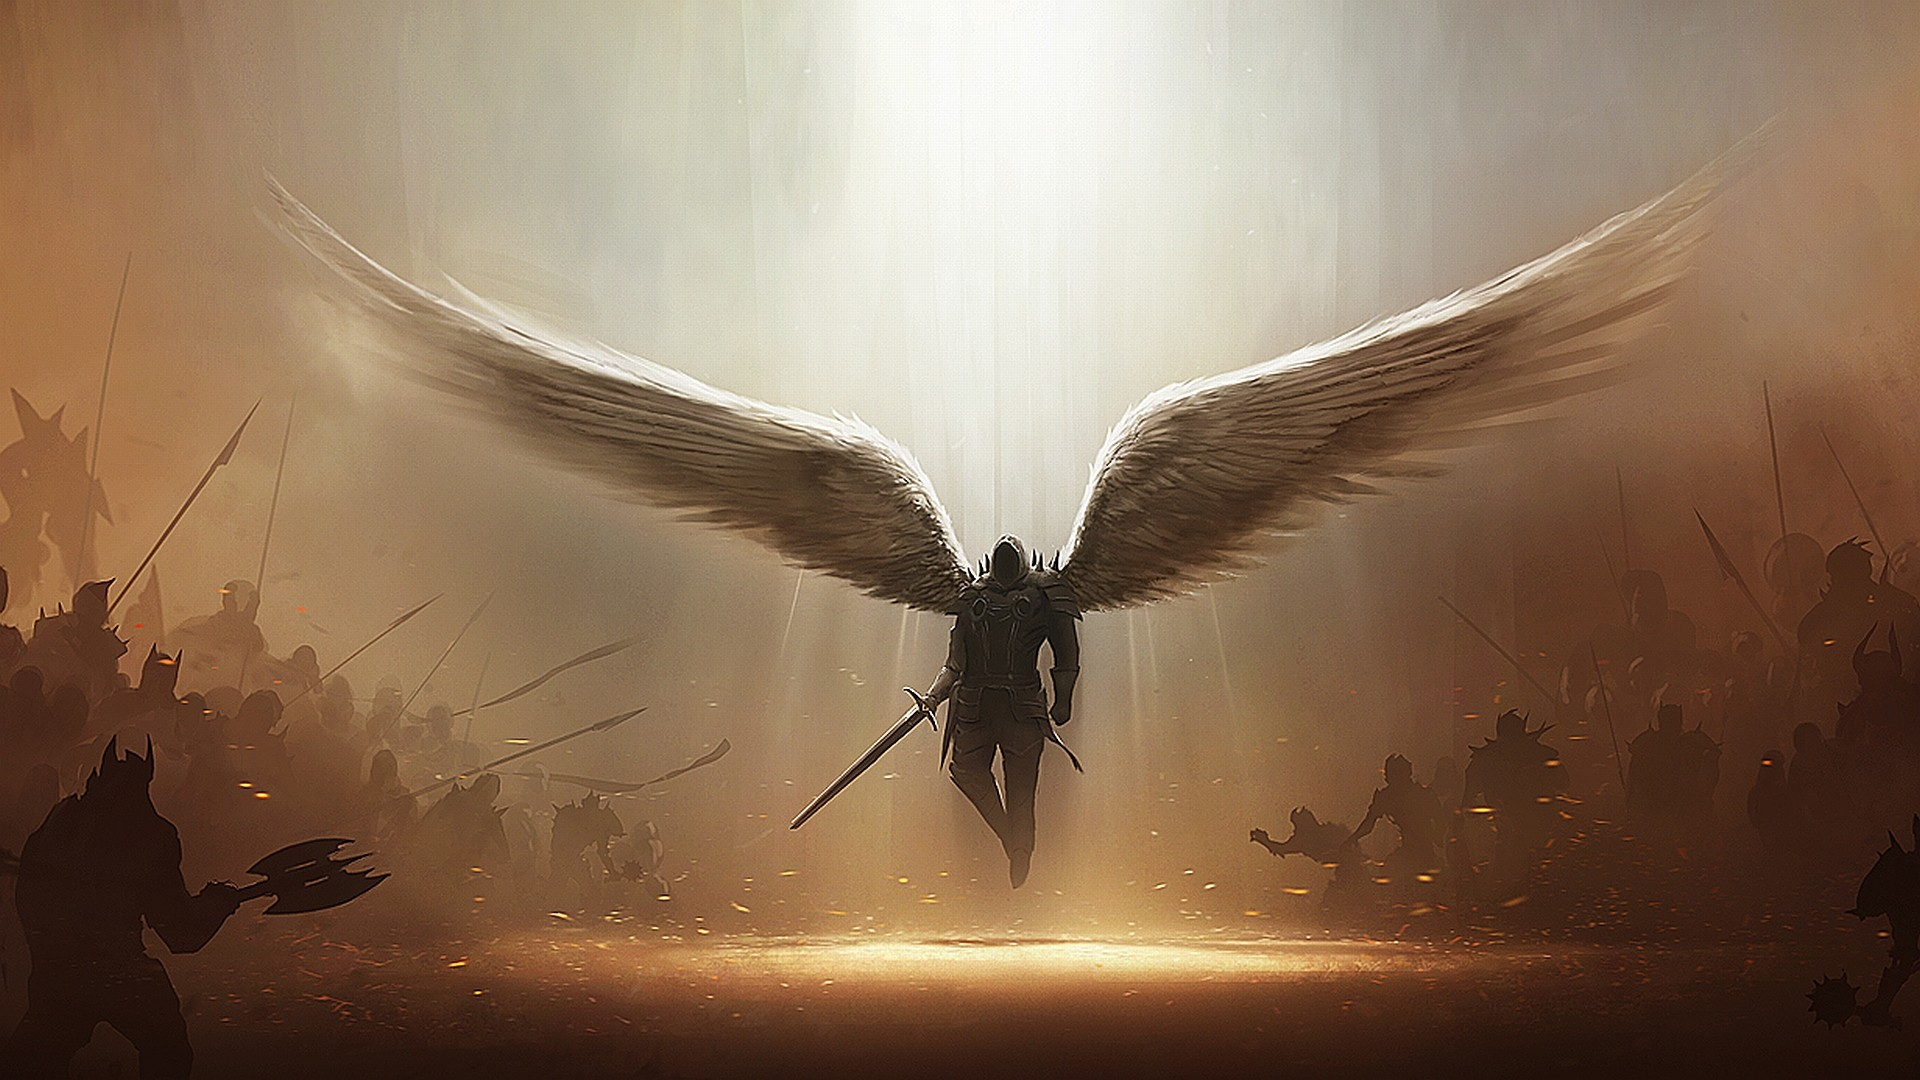 free wallpaper for desktop of angels   wwwwallpapers in hdcom 1920x1080